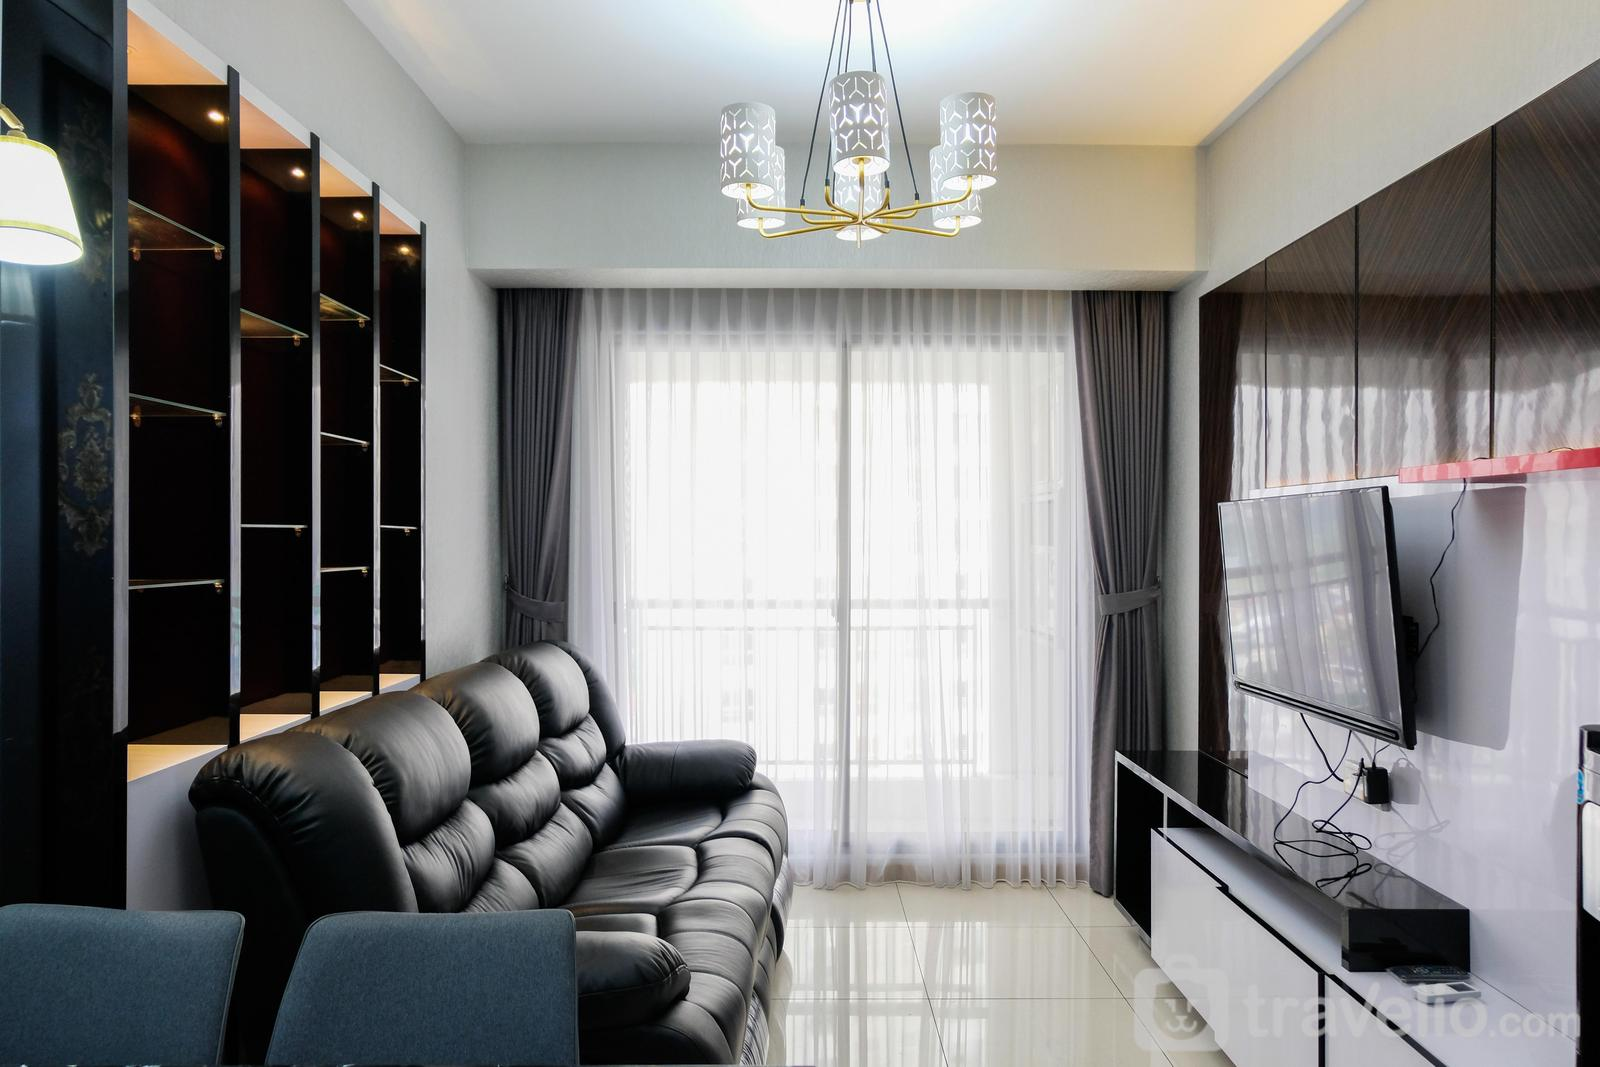 M-Town Signature - 3BR Apartment with Pool View at M-Town Residence By Travelio